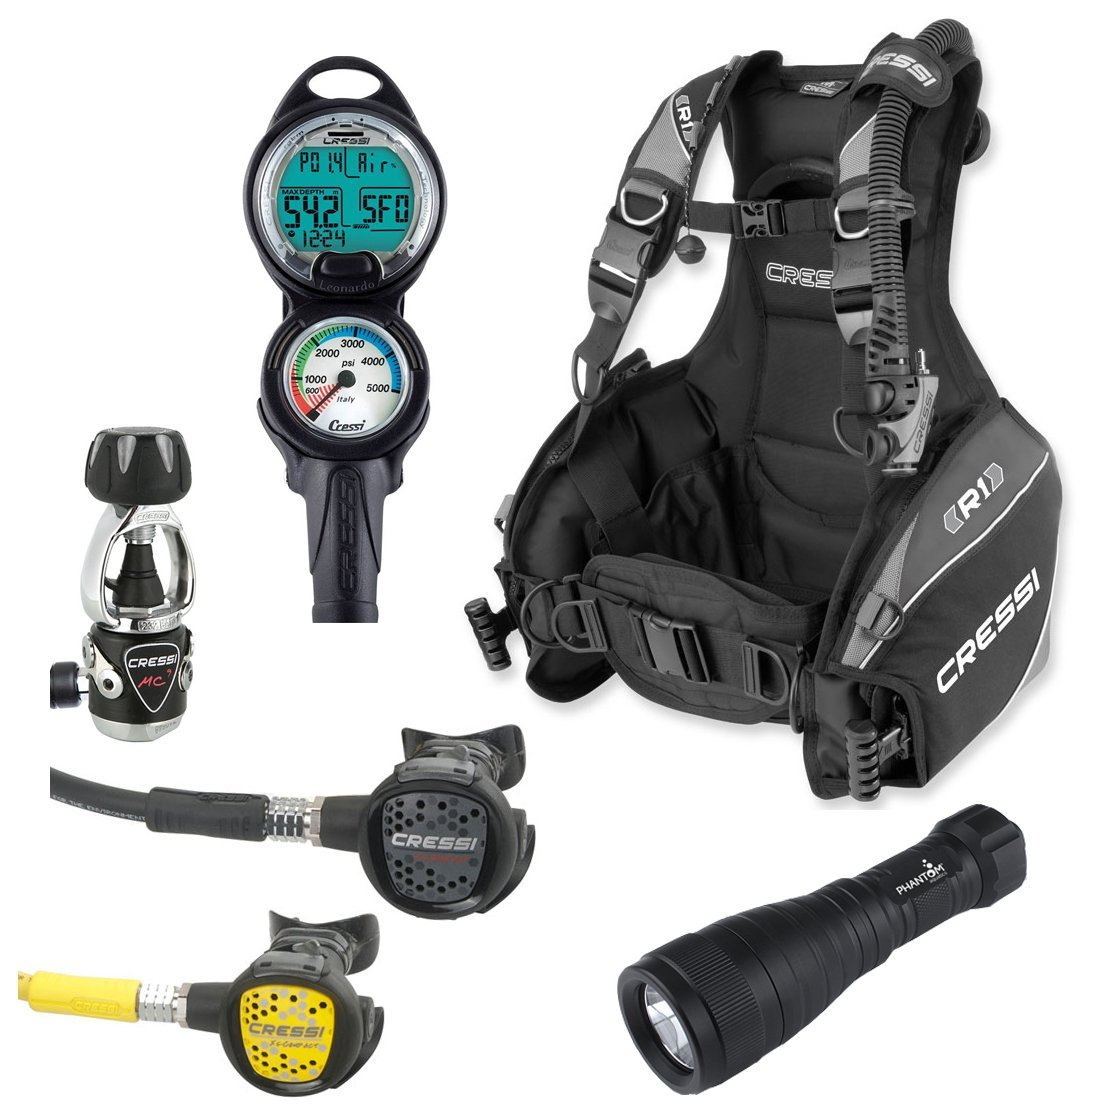 Cressi r1 bcd scuba gear package video review for for Scuba dive equipment